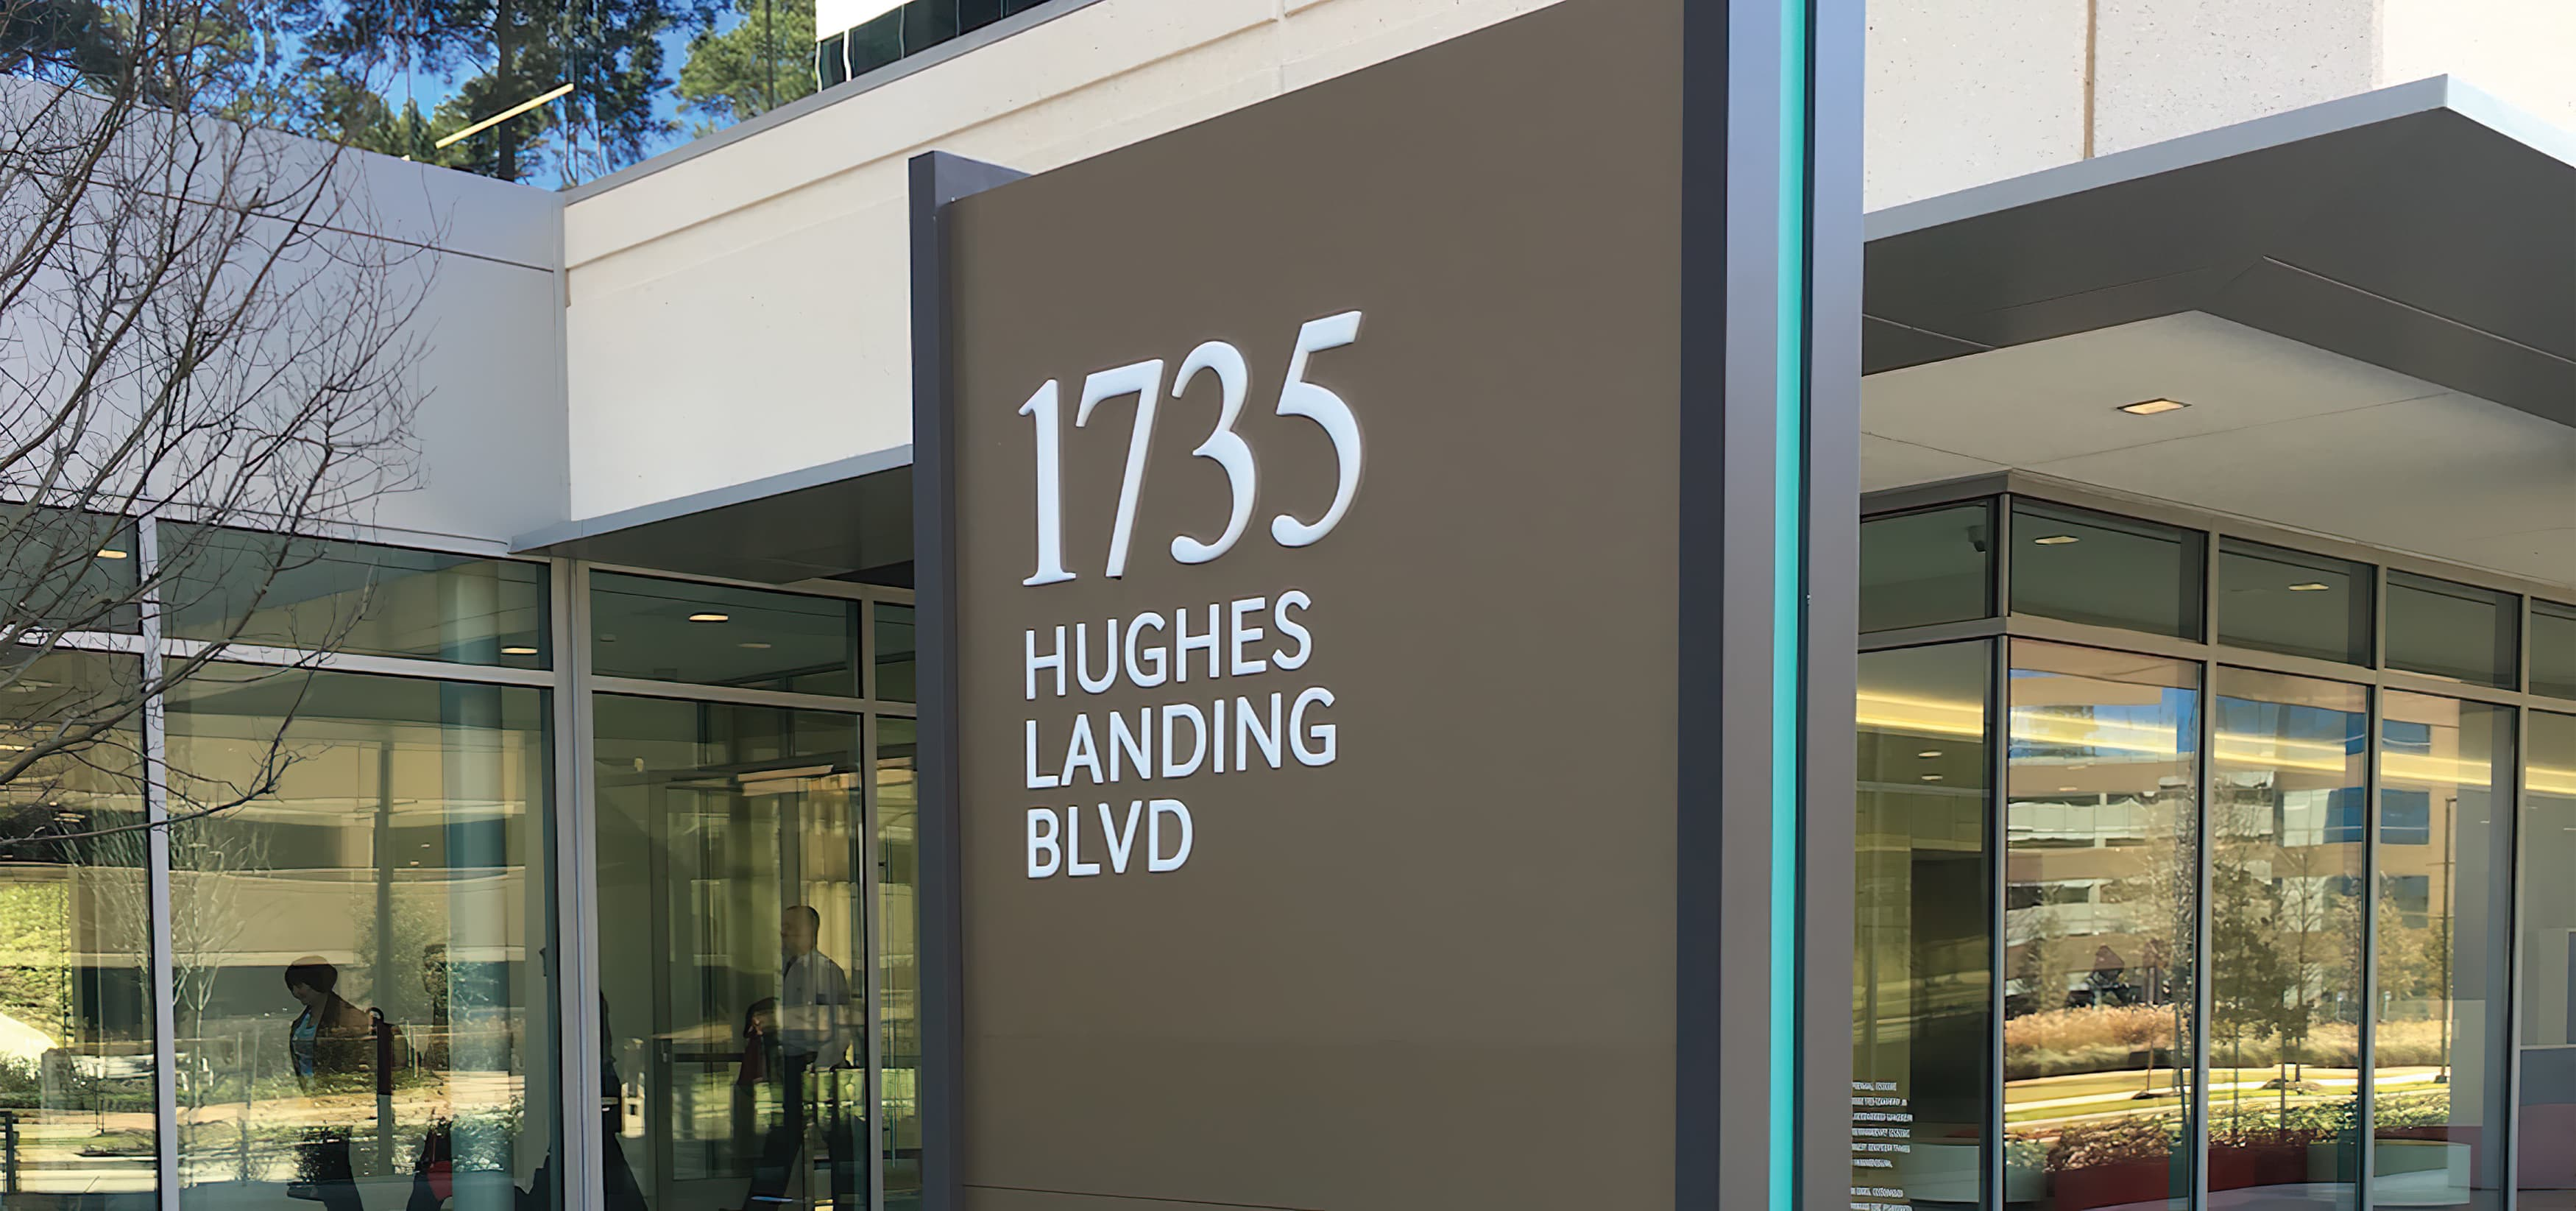 Hughes Landing, a mixed-use development in  The Woodlands, Texas.